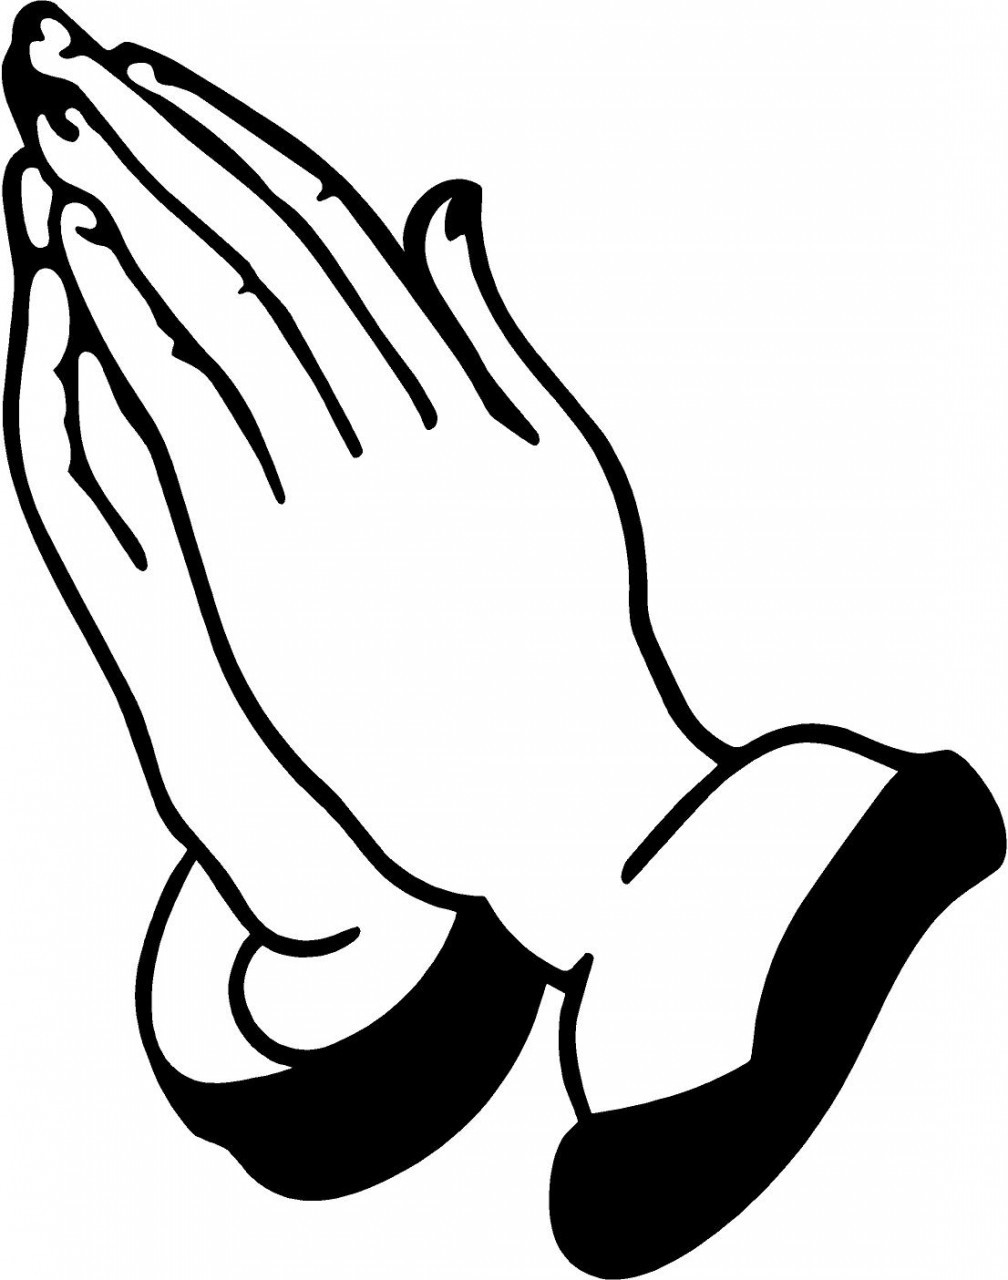 1008x1280 Praying Hands Prayer Hands Clipart Free Clipart Images